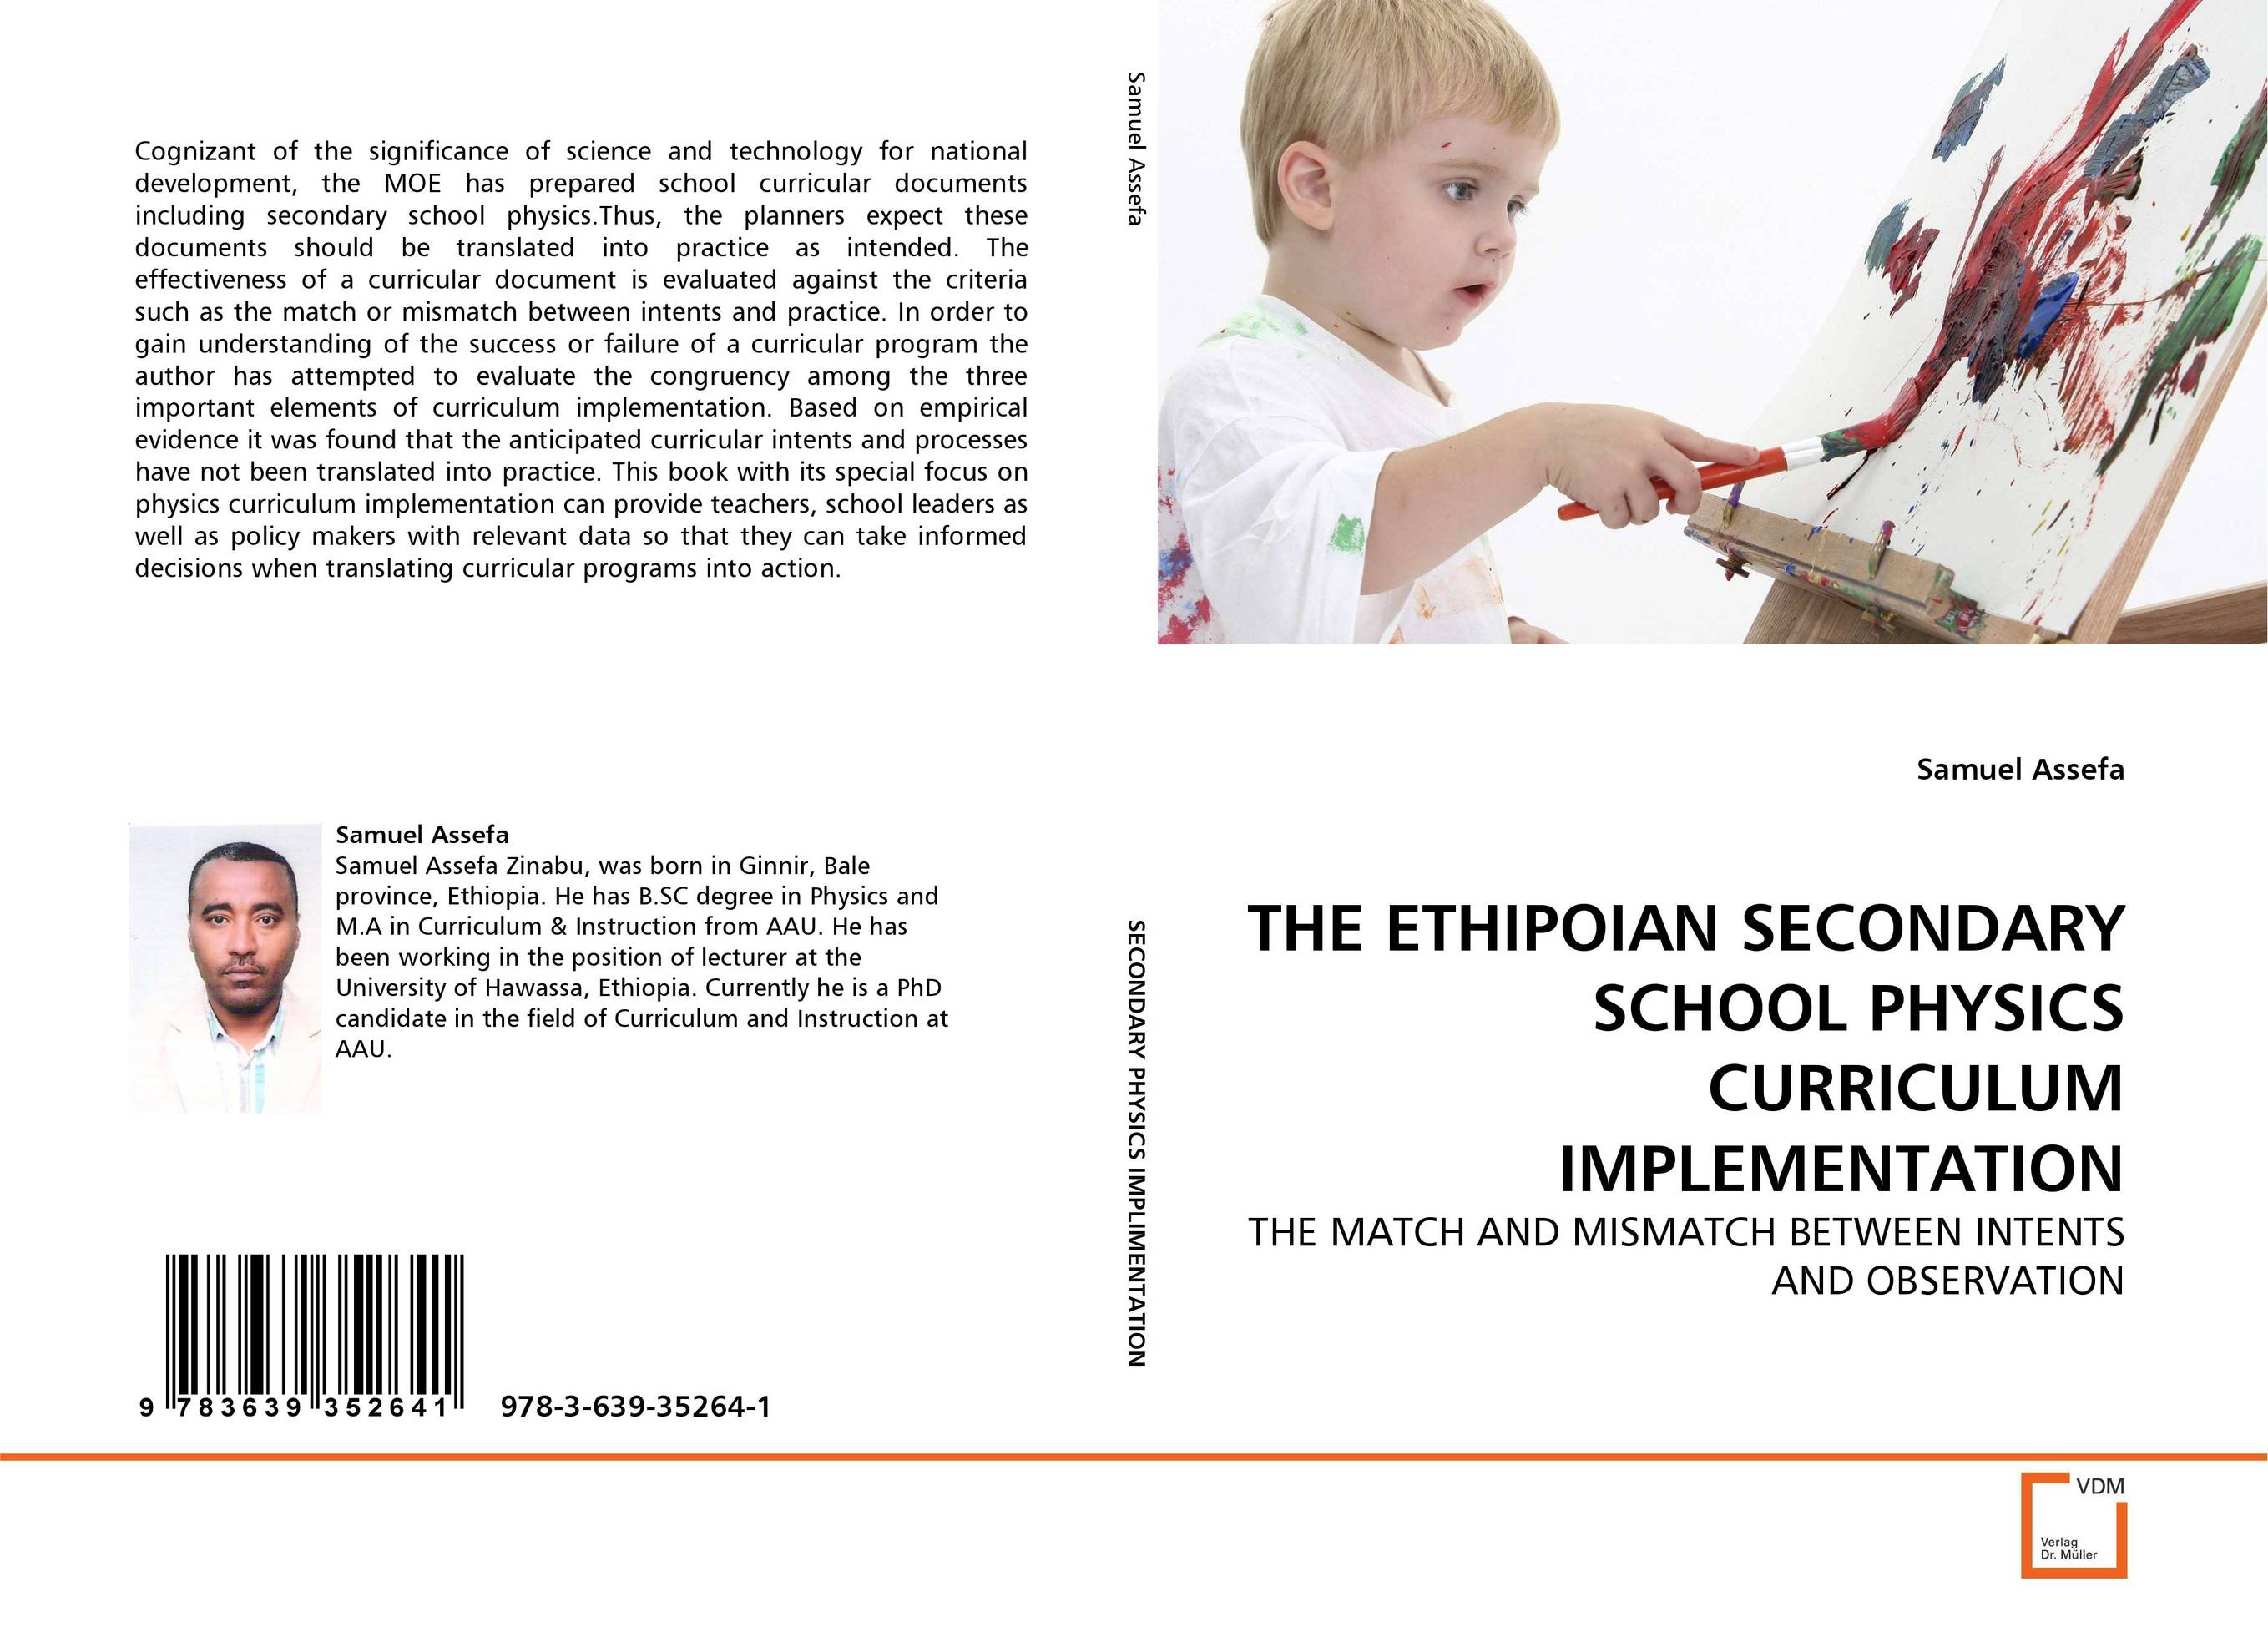 THE ETHIPOIAN SECONDARY SCHOOL PHYSICS CURRICULUM IMPLEMENTATION curriculum implementation